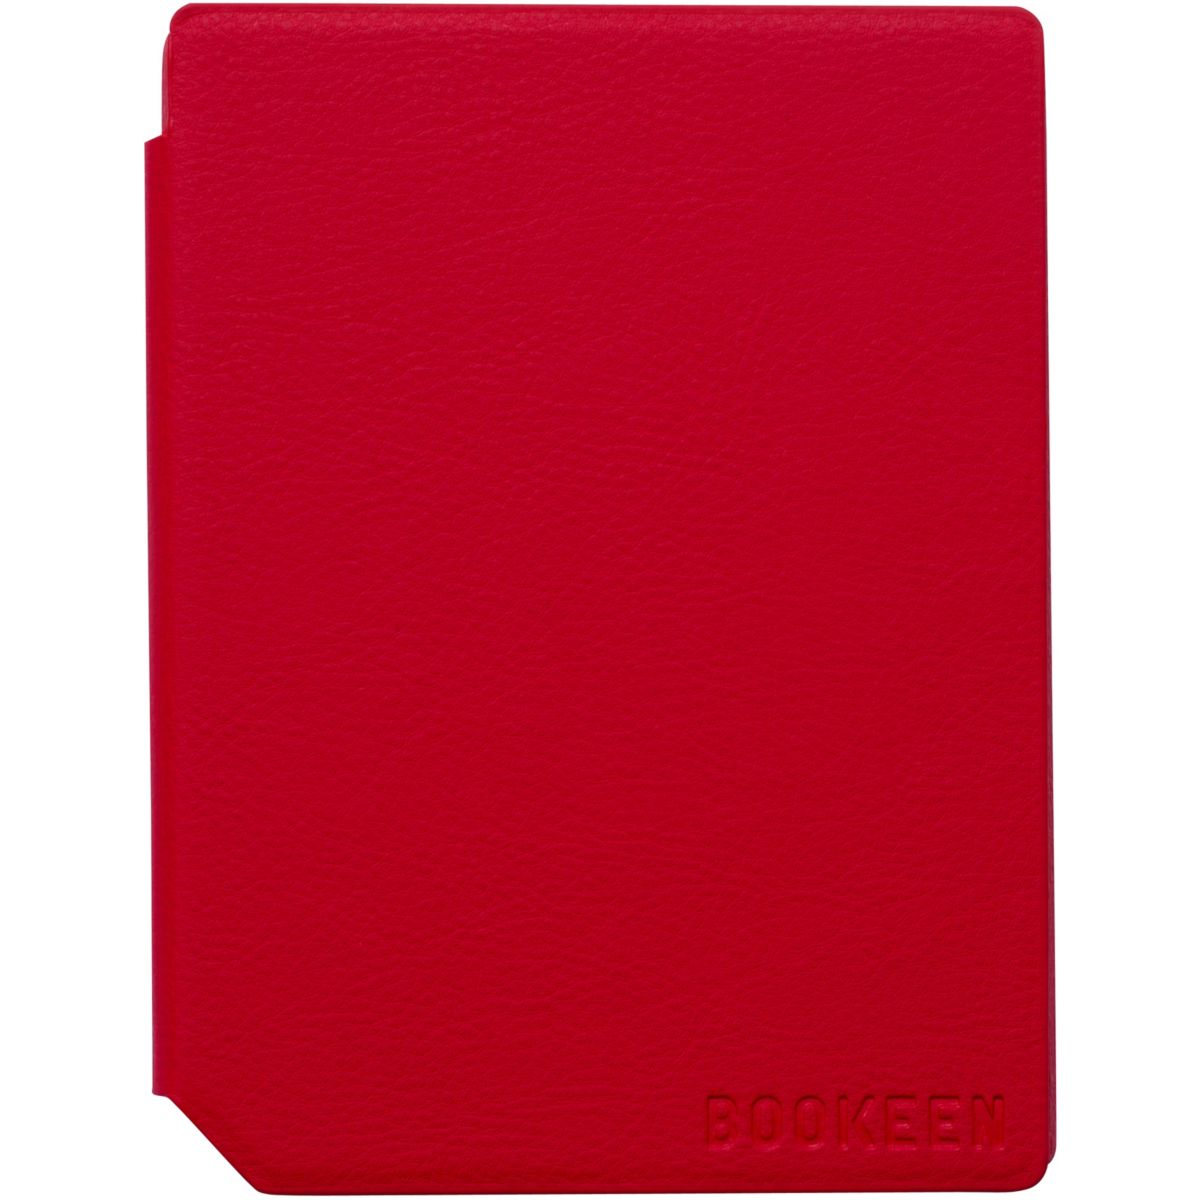 Etui bookeen cover cybook muse rouge vermillon - 15% de remise...